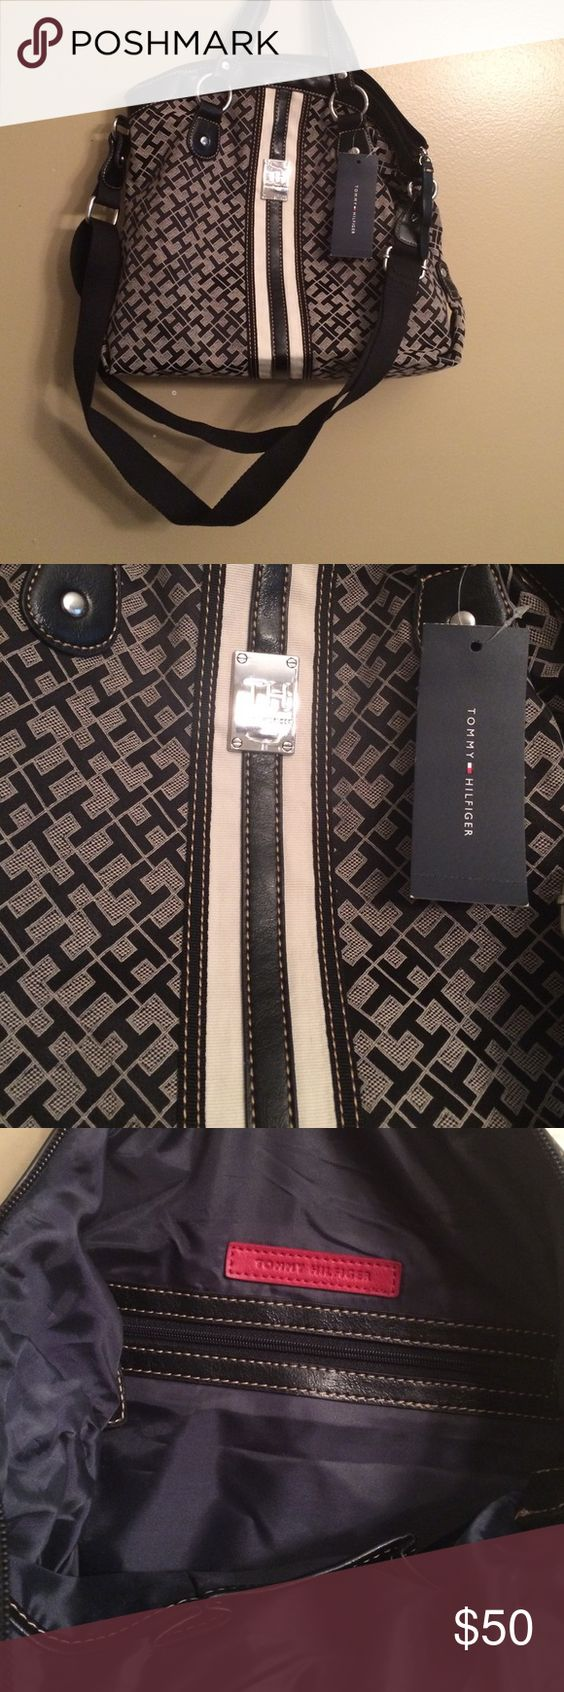 Tommy Hilfiger Purse New with tag Bags Shoulder Bags